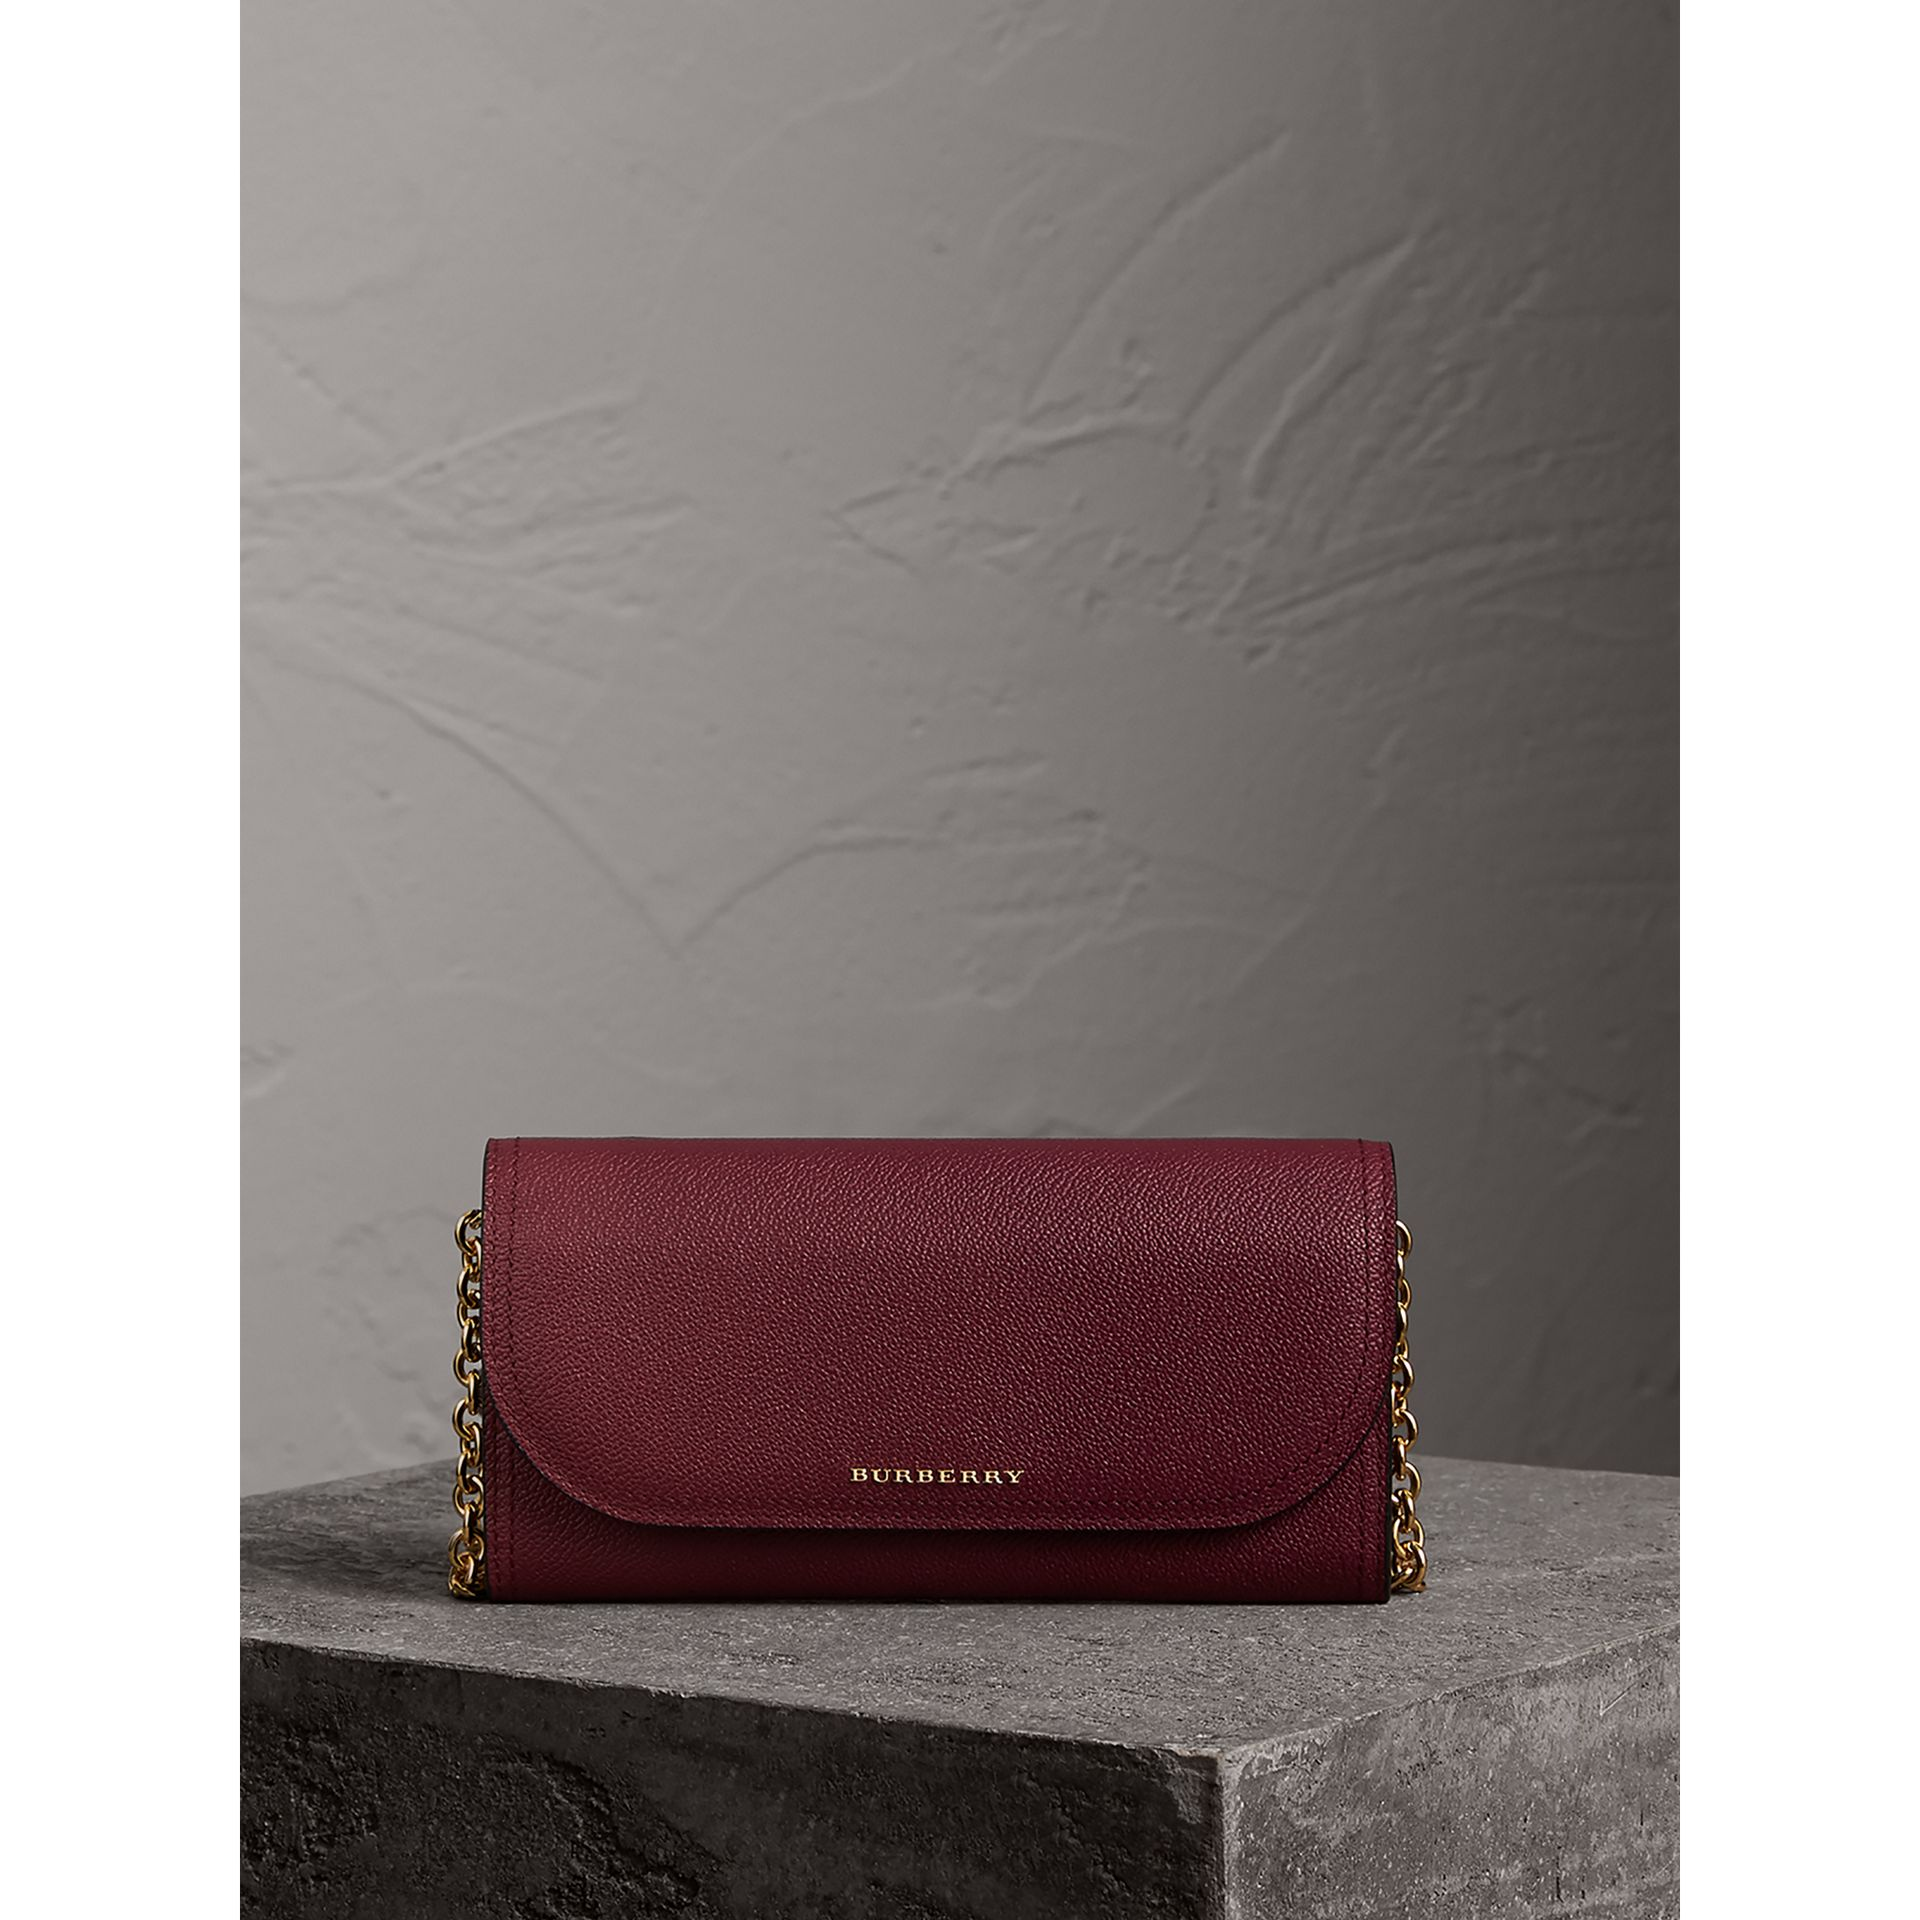 Leather Wallet with Chain in Dark Plum - Women | Burberry - gallery image 6